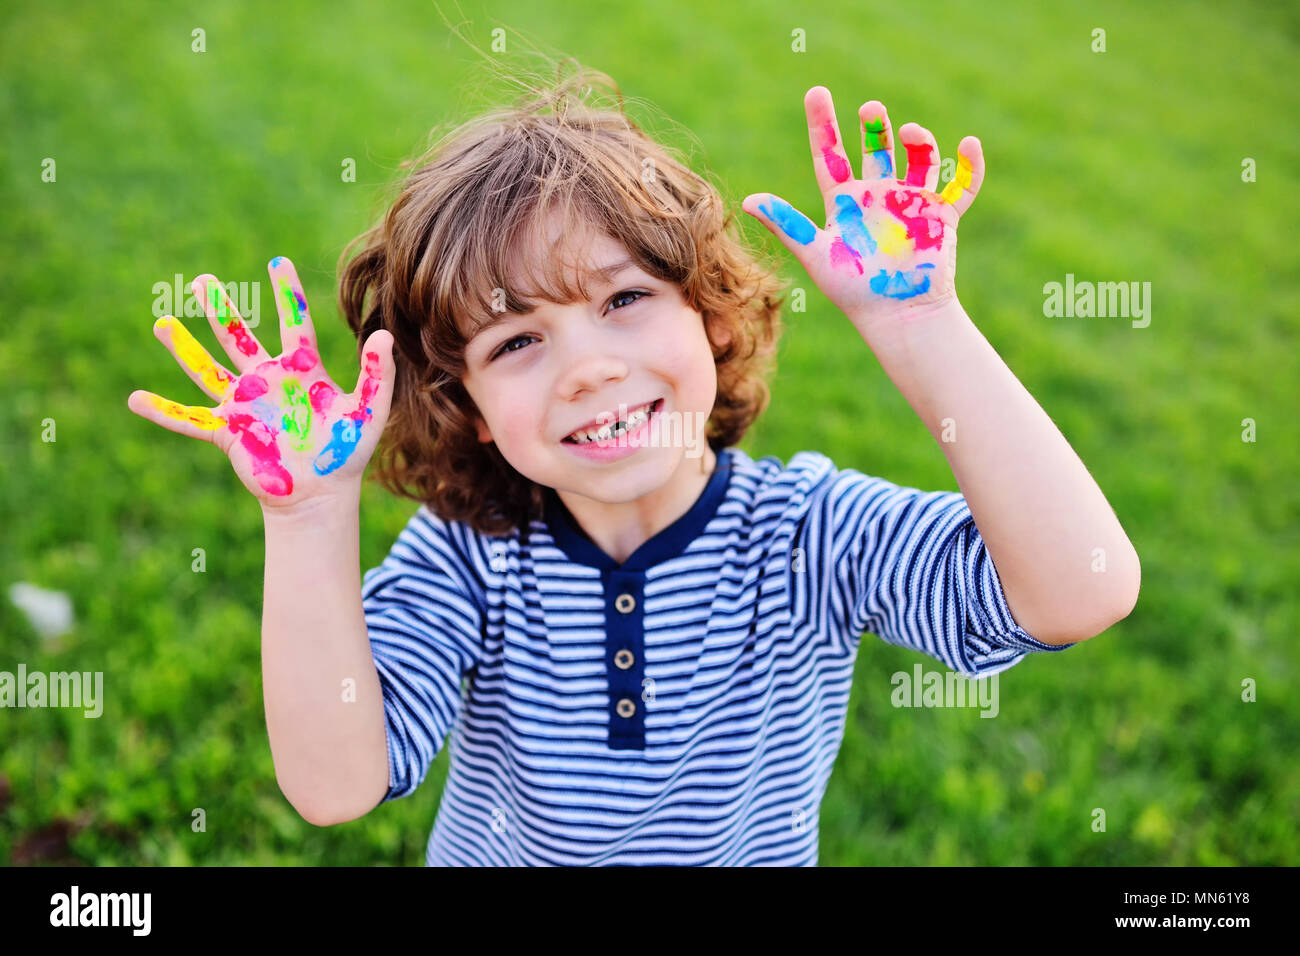 boy with curly hair without front milk tooth shows hands dirty with multi-colored finger paints and smiles. - Stock Image